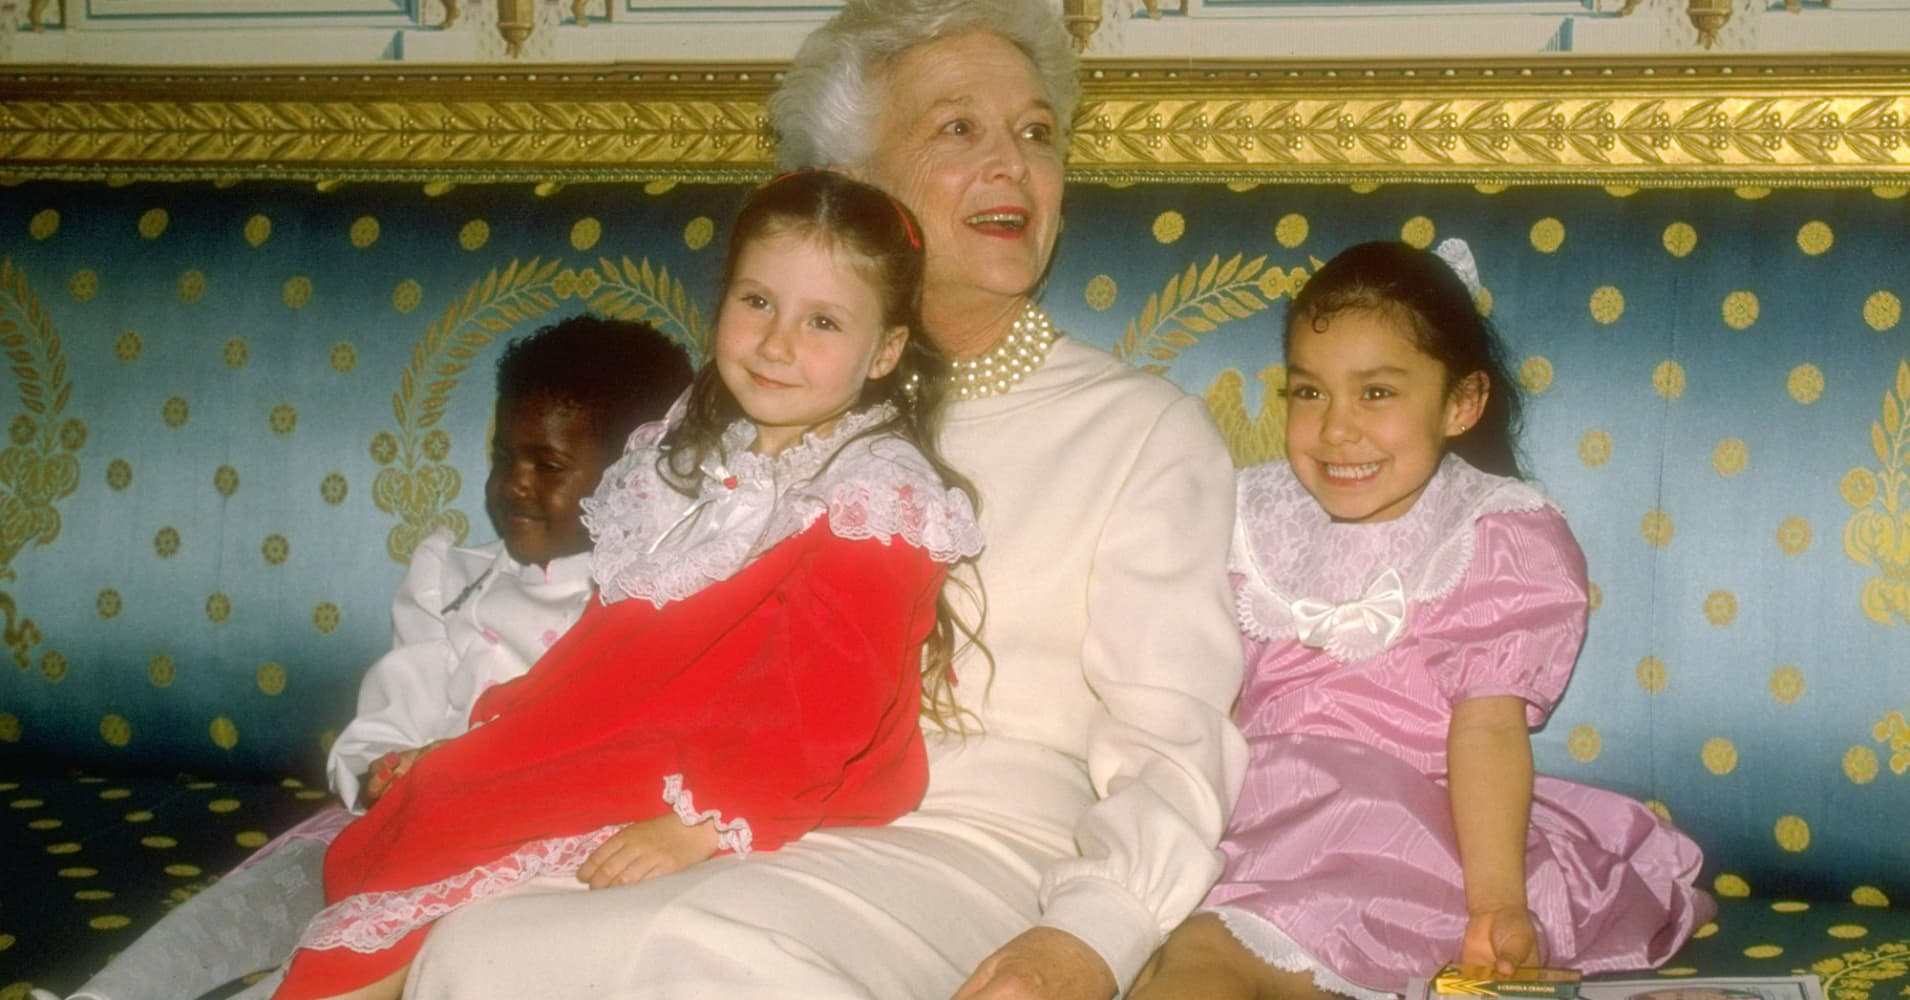 First Lady Barbara Bush, sporting her signature pearls, cuddling with a trio of little girls at fete for the Barbara Bush Foundation for Family Literacy in 1989.